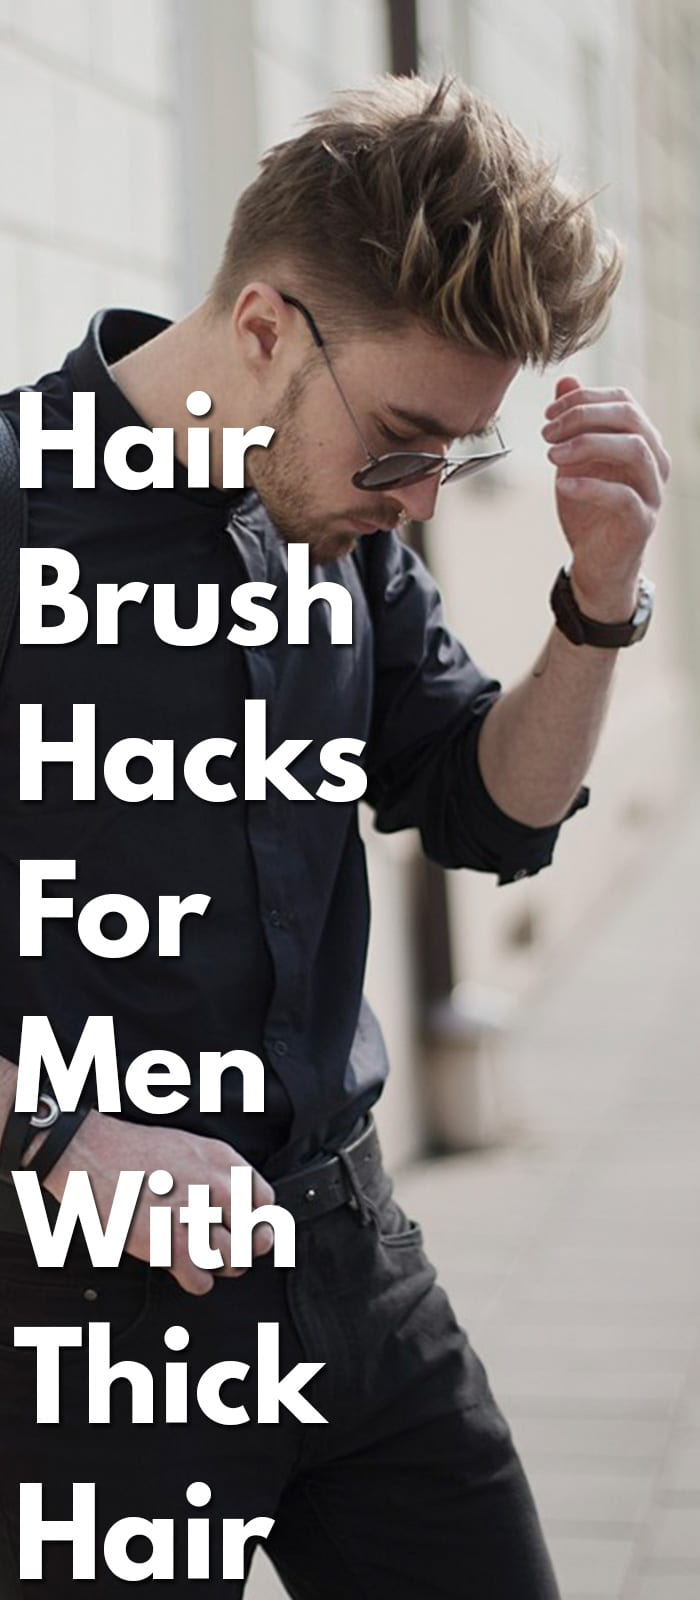 Hair-Brush-Hacks-For-Men-With-Thick-Hair.